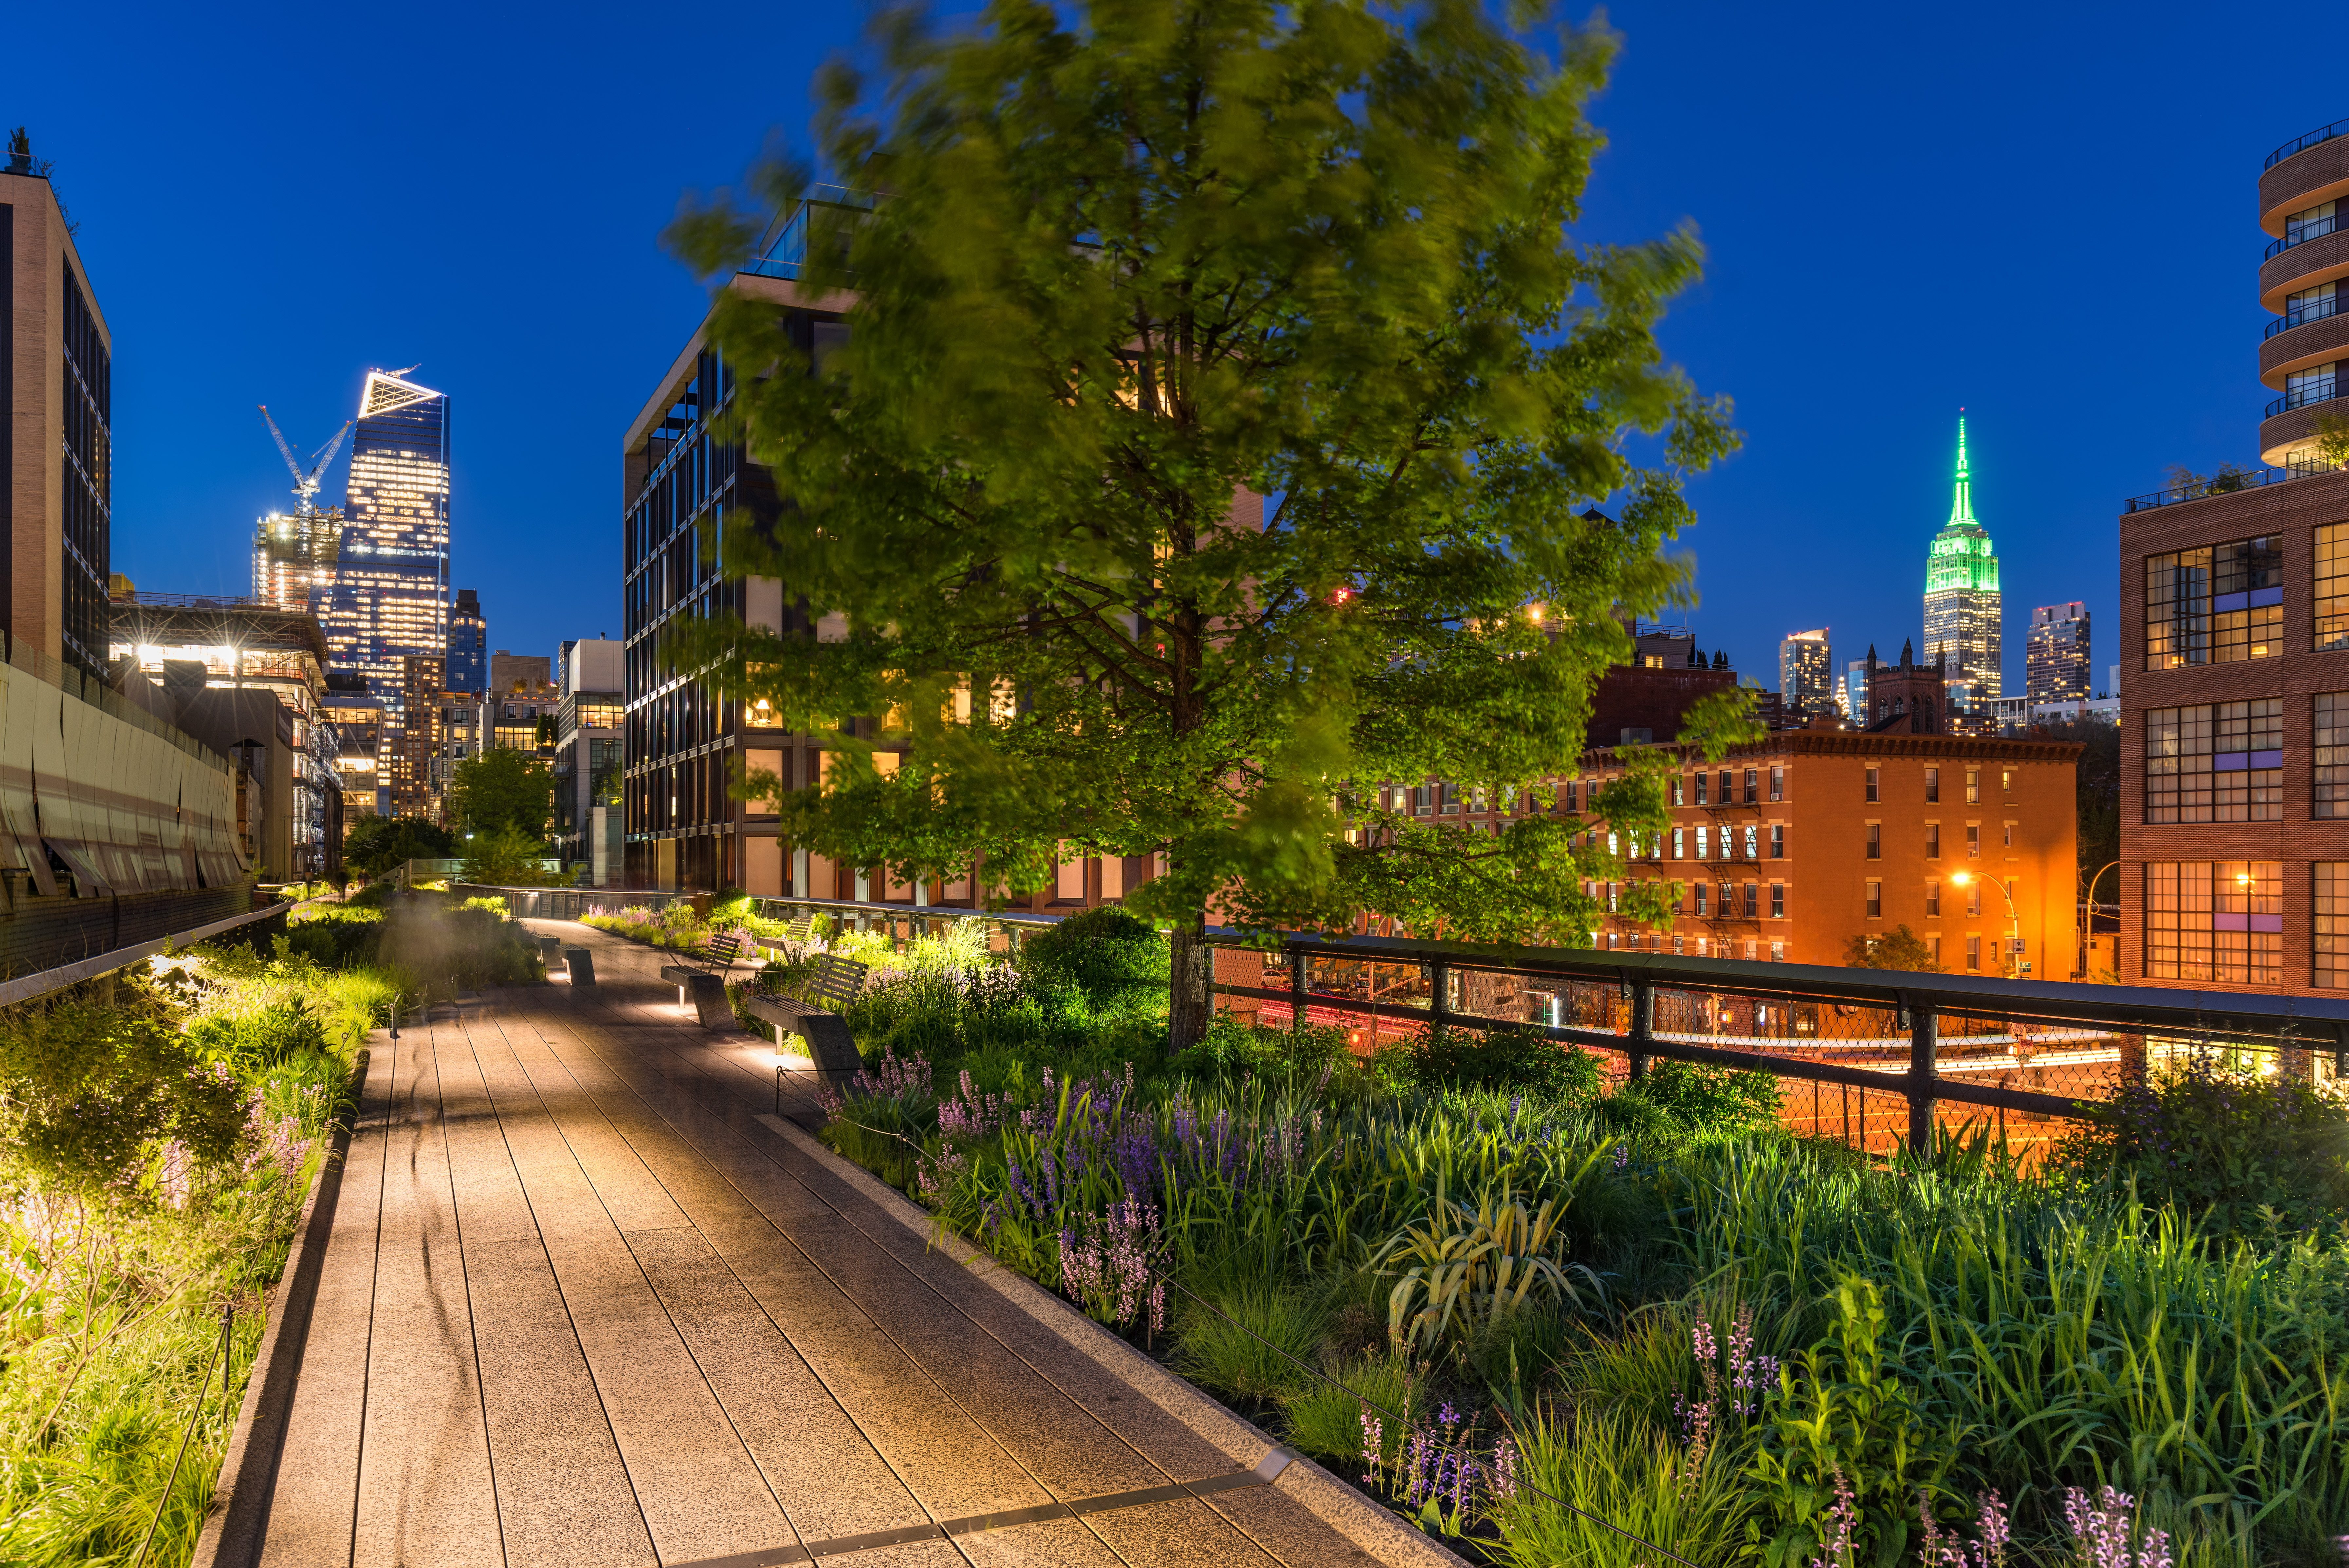 Outdoor New York bench and green flowers under street lights